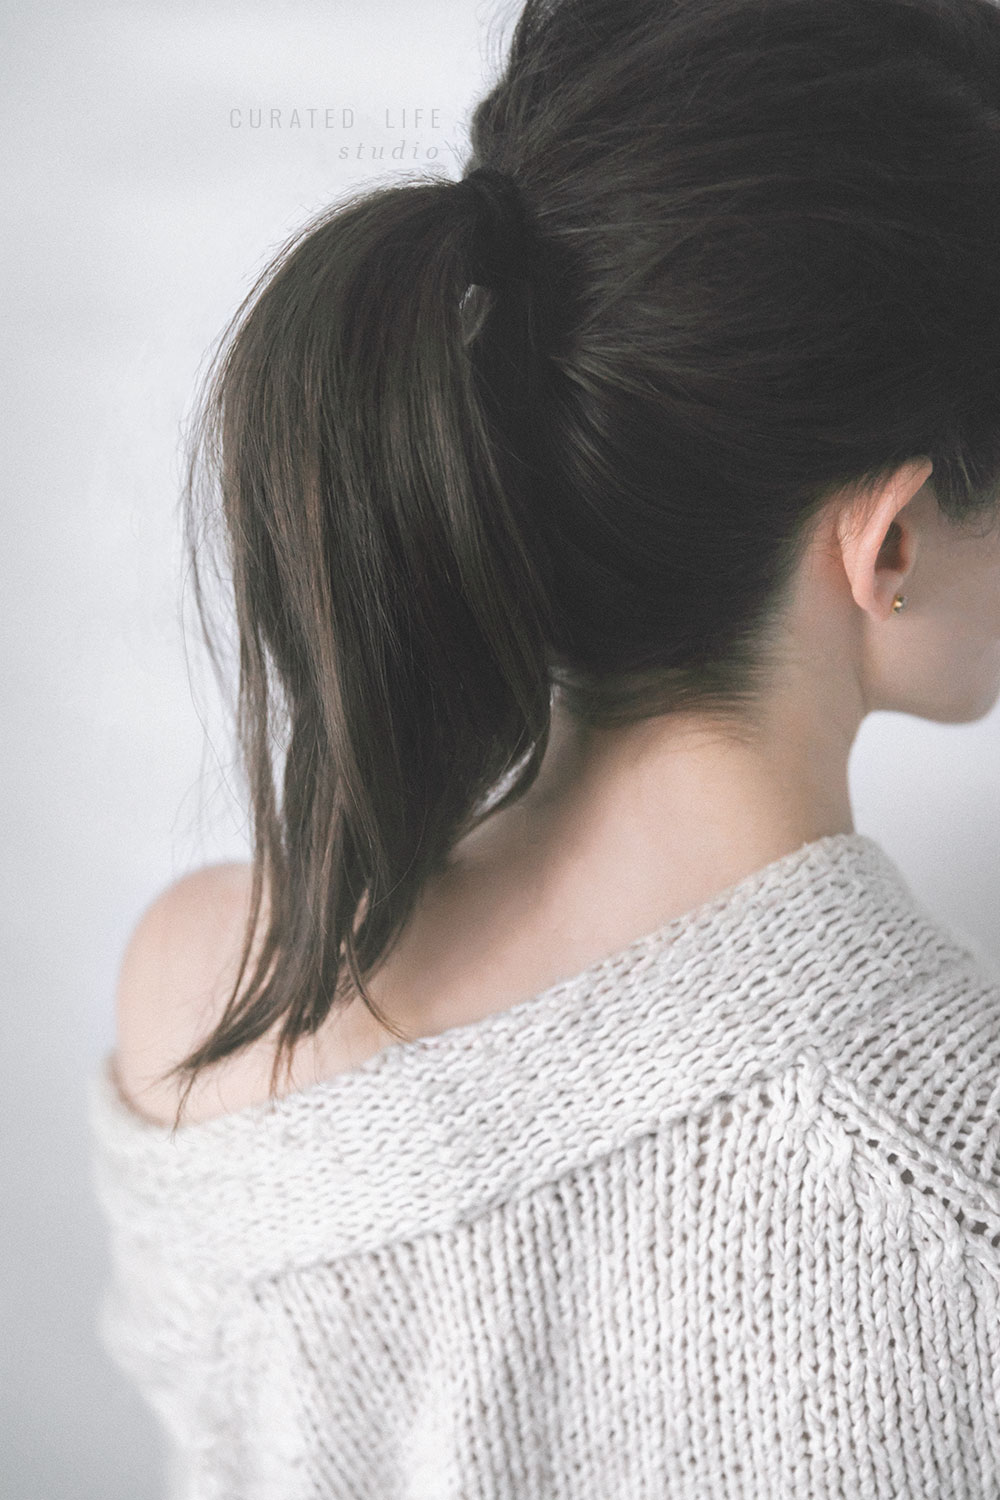 A girl faces a wall with a large woollen robe draped over her shoulder. Her hair is dark, brunette and tied messily in a ponytail. On a white wall beside her, faint lines of light paint the wall, reminiscent of the morning.